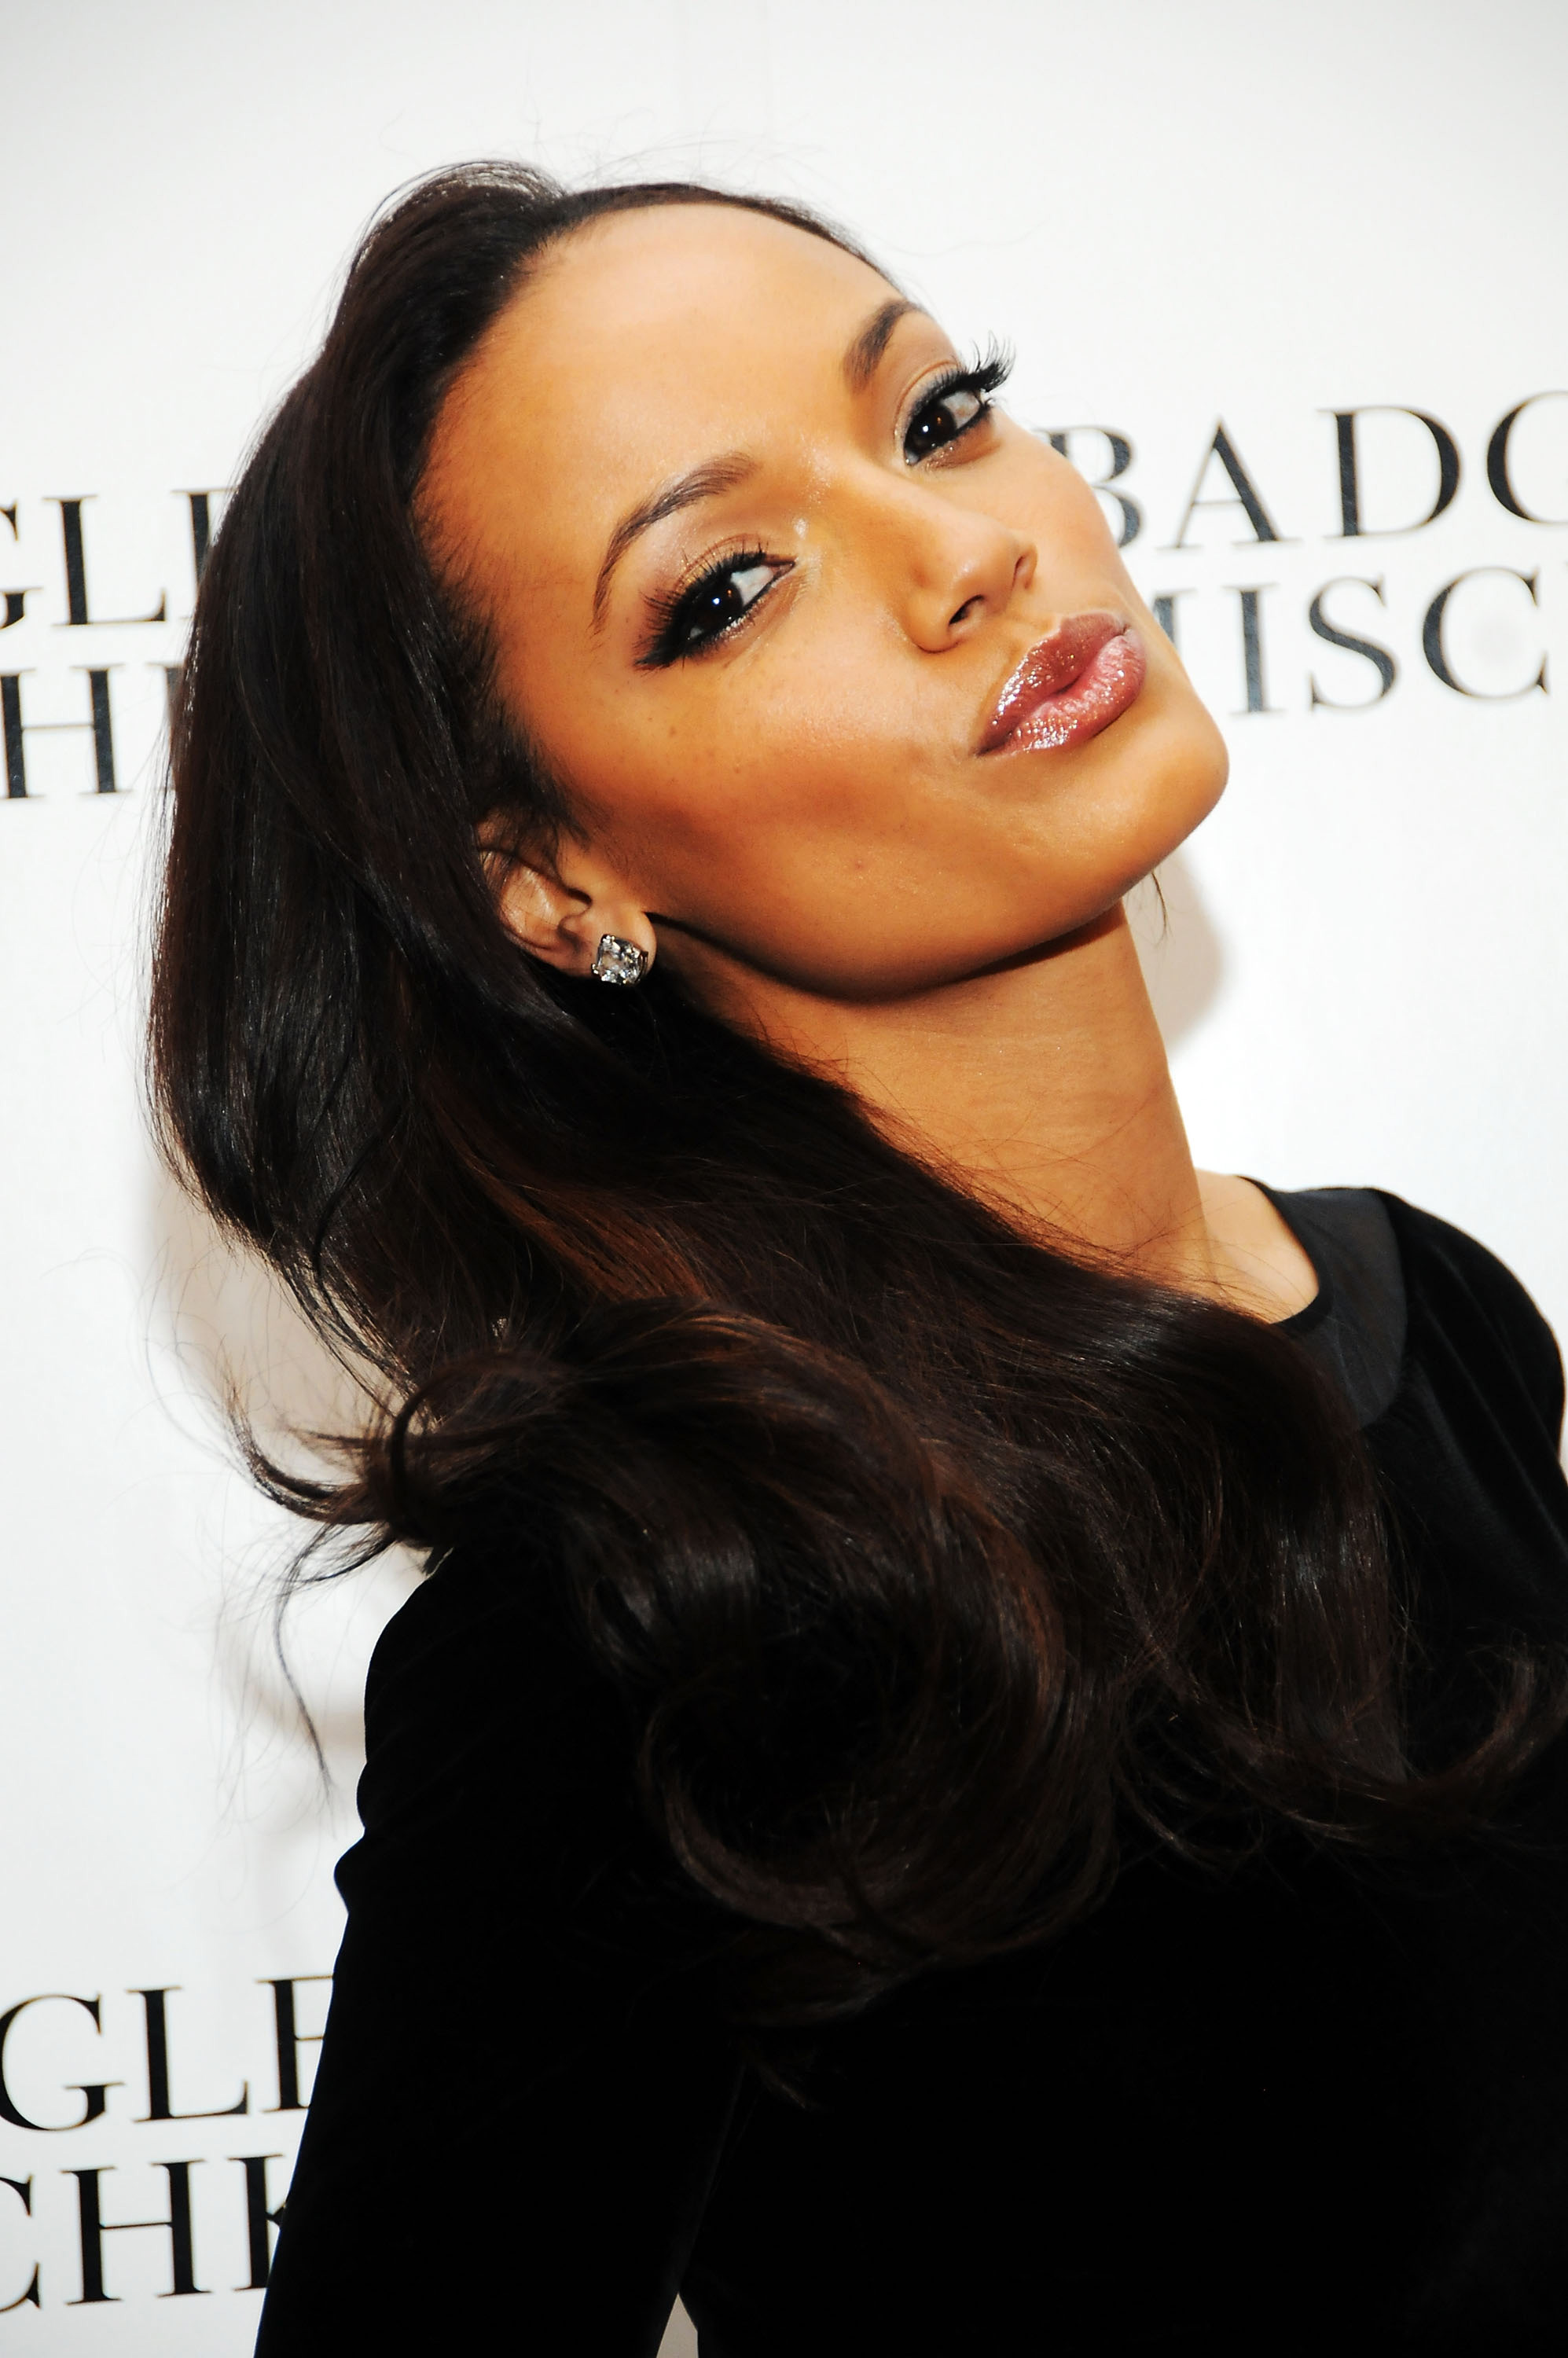 Selita Ebanks | Keep Up With the Beauty-Savvy Celebrities ...